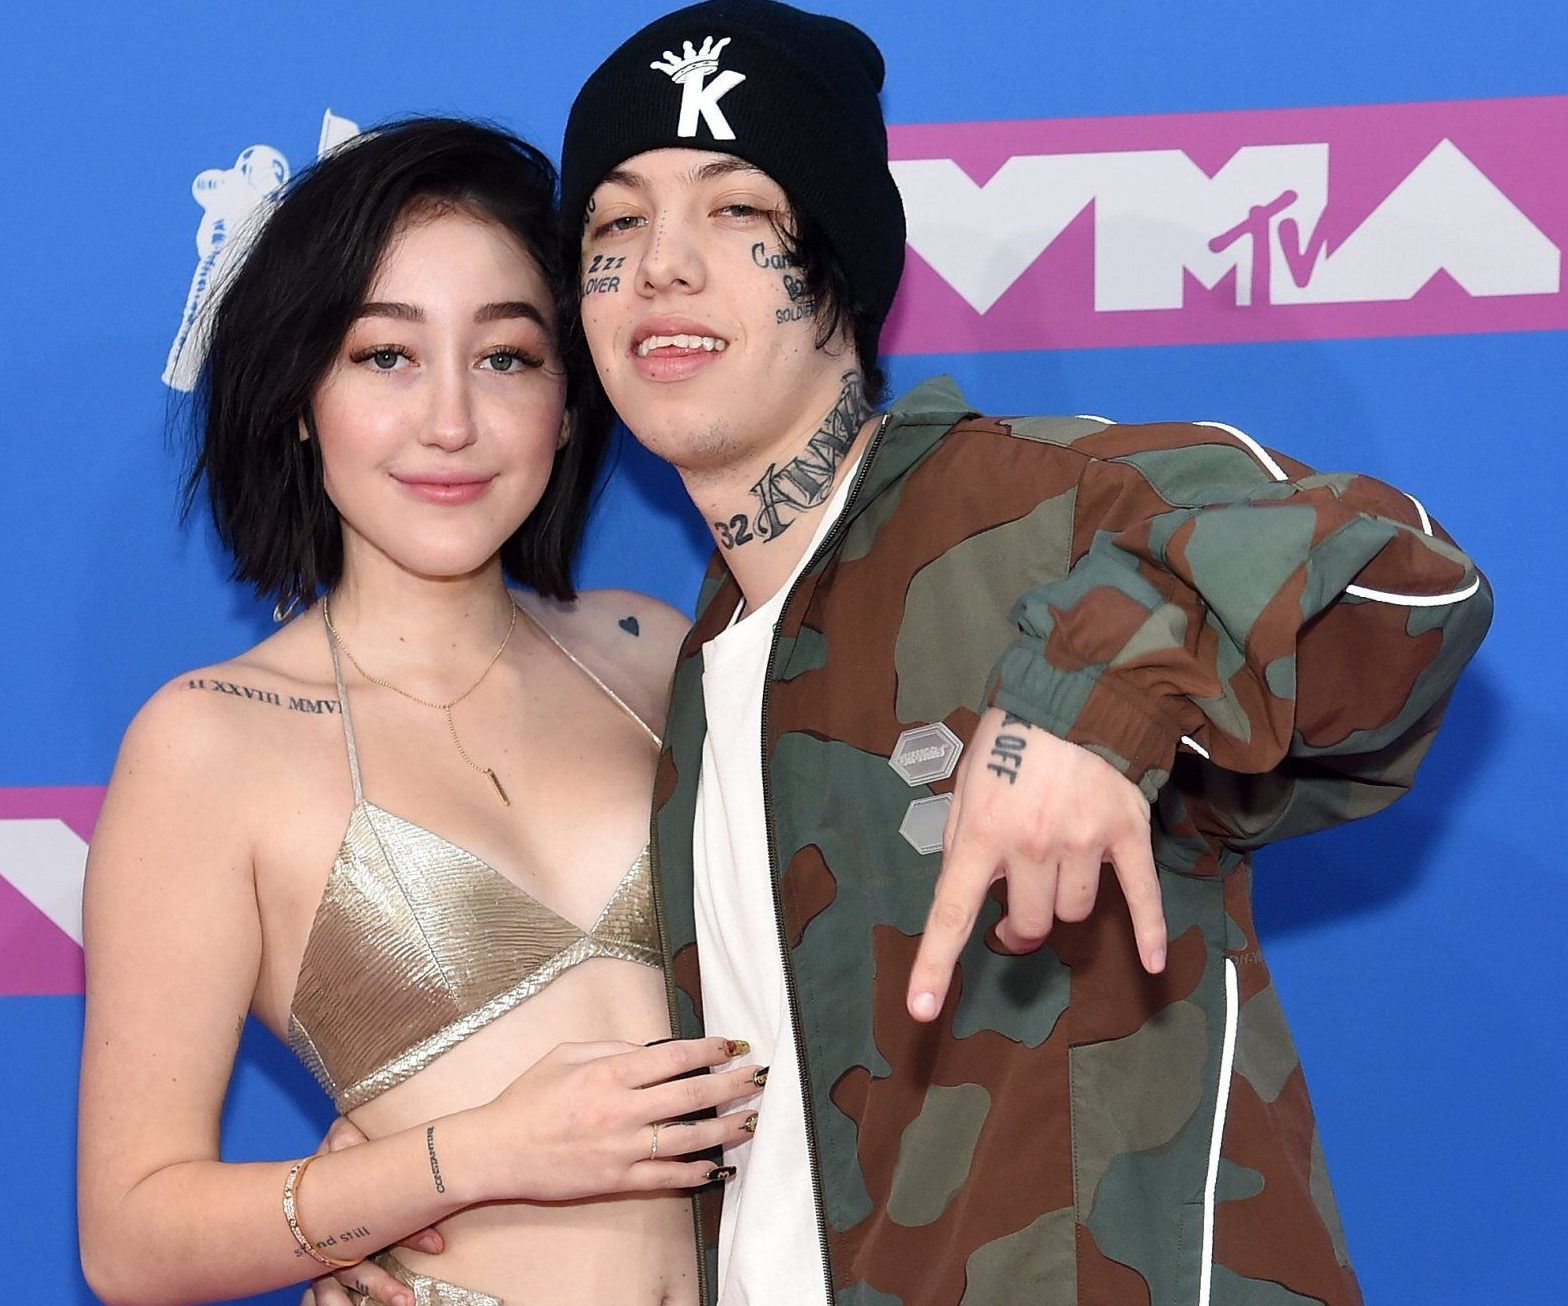 Lil Xan labels Noah Cyrus one of the 'best female artists' three months after 'sloppy' break-up